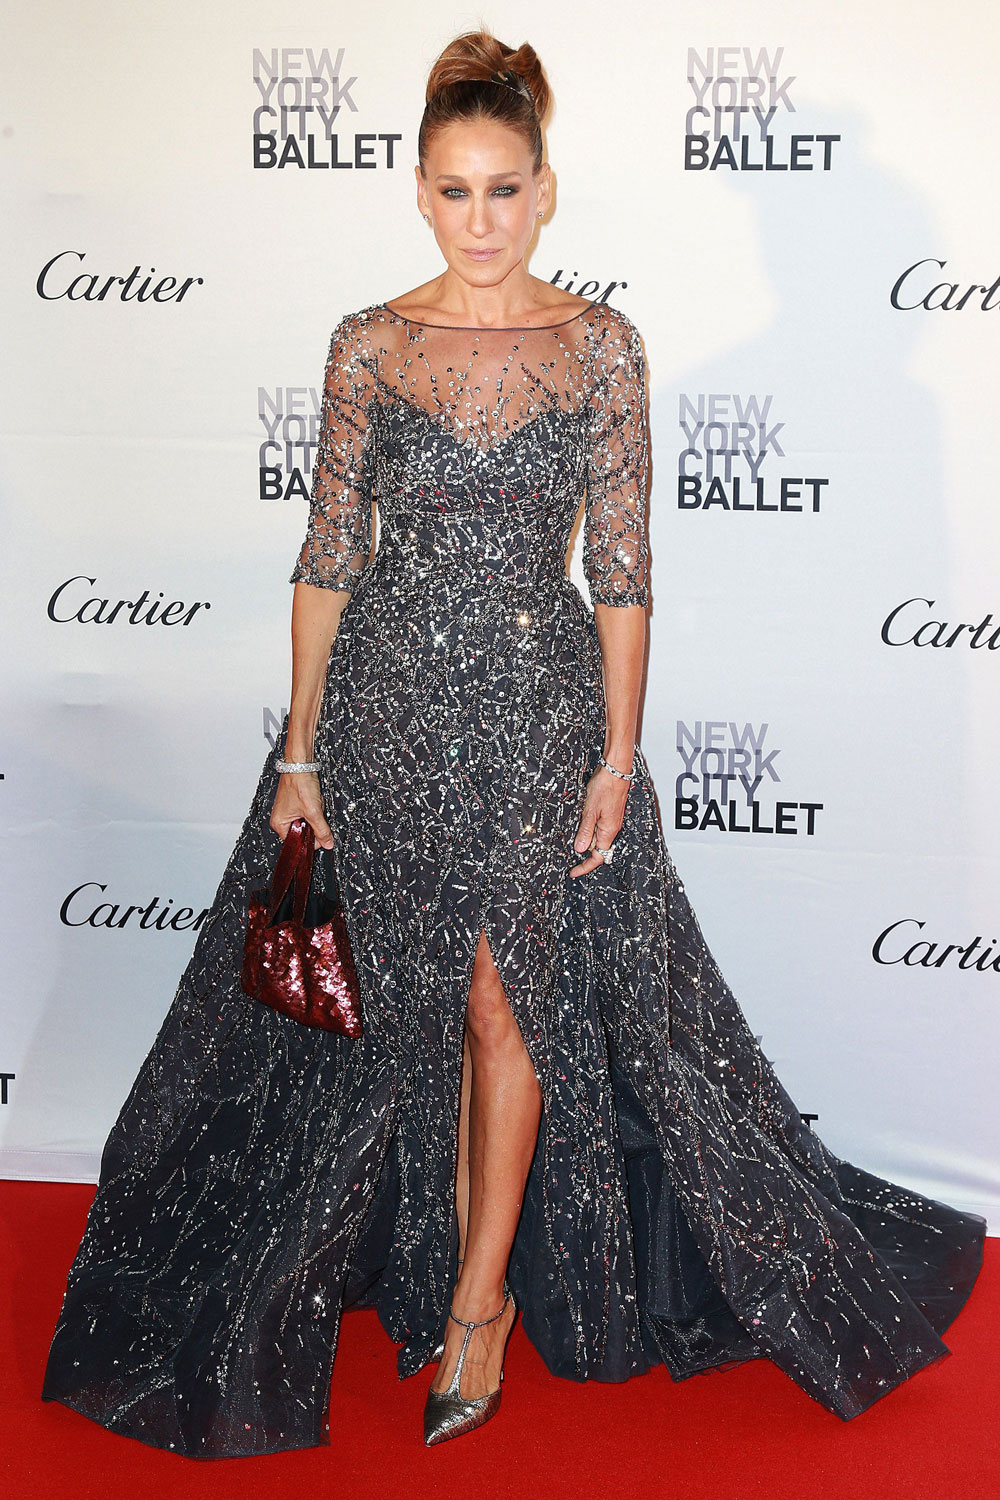 Sarah Jessica Parker: Her Iconic Fashion Moments